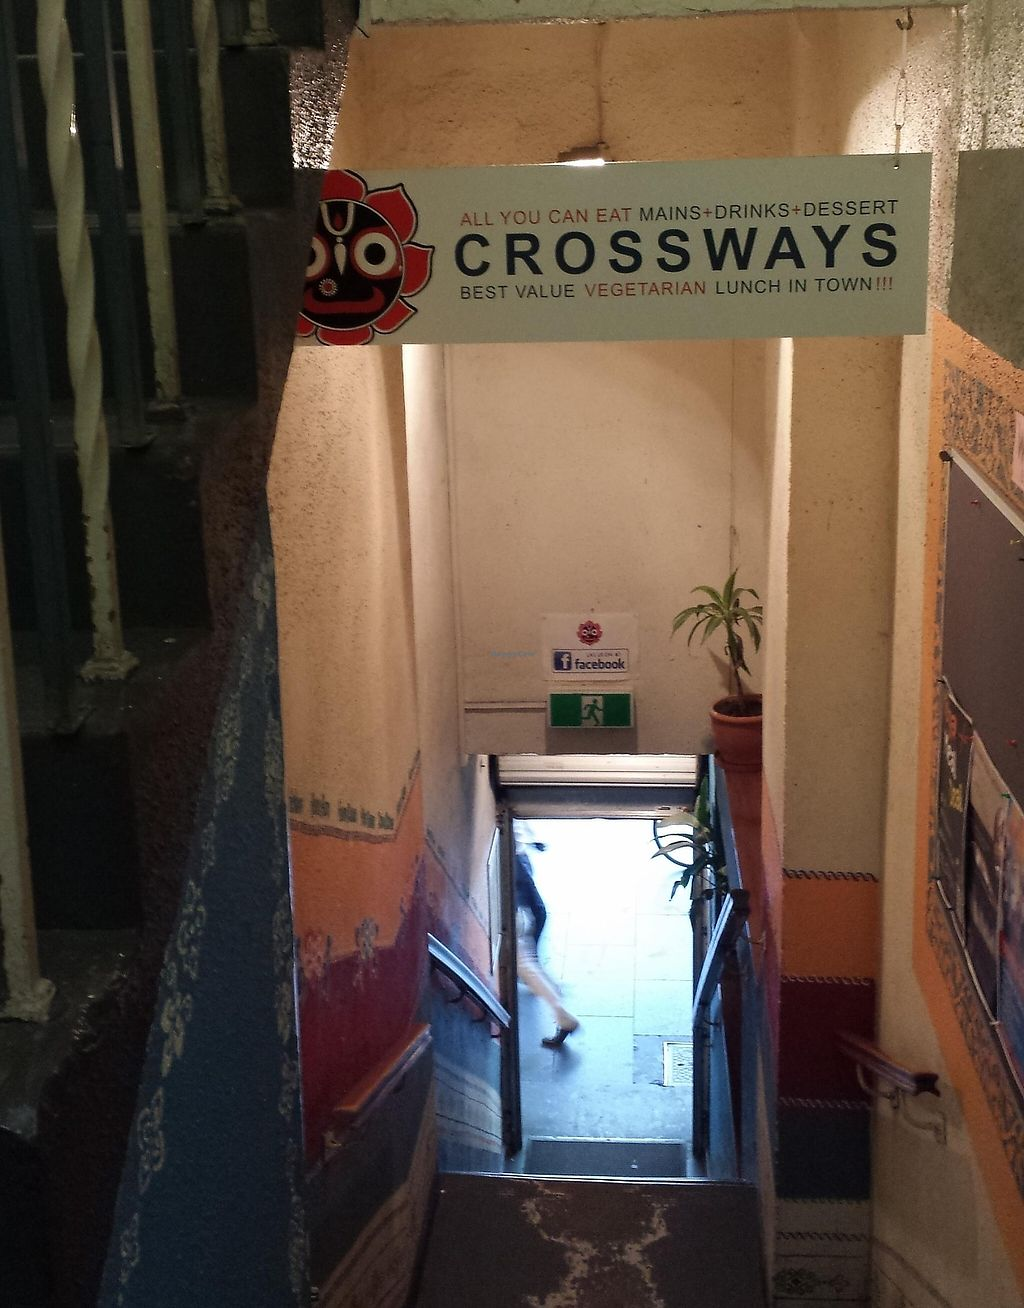 """Photo of Crossways  by <a href=""""/members/profile/Aloo"""">Aloo</a> <br/>Convenient location on Swanston street, up the stairs <br/> March 3, 2016  - <a href='/contact/abuse/image/533/260064'>Report</a>"""